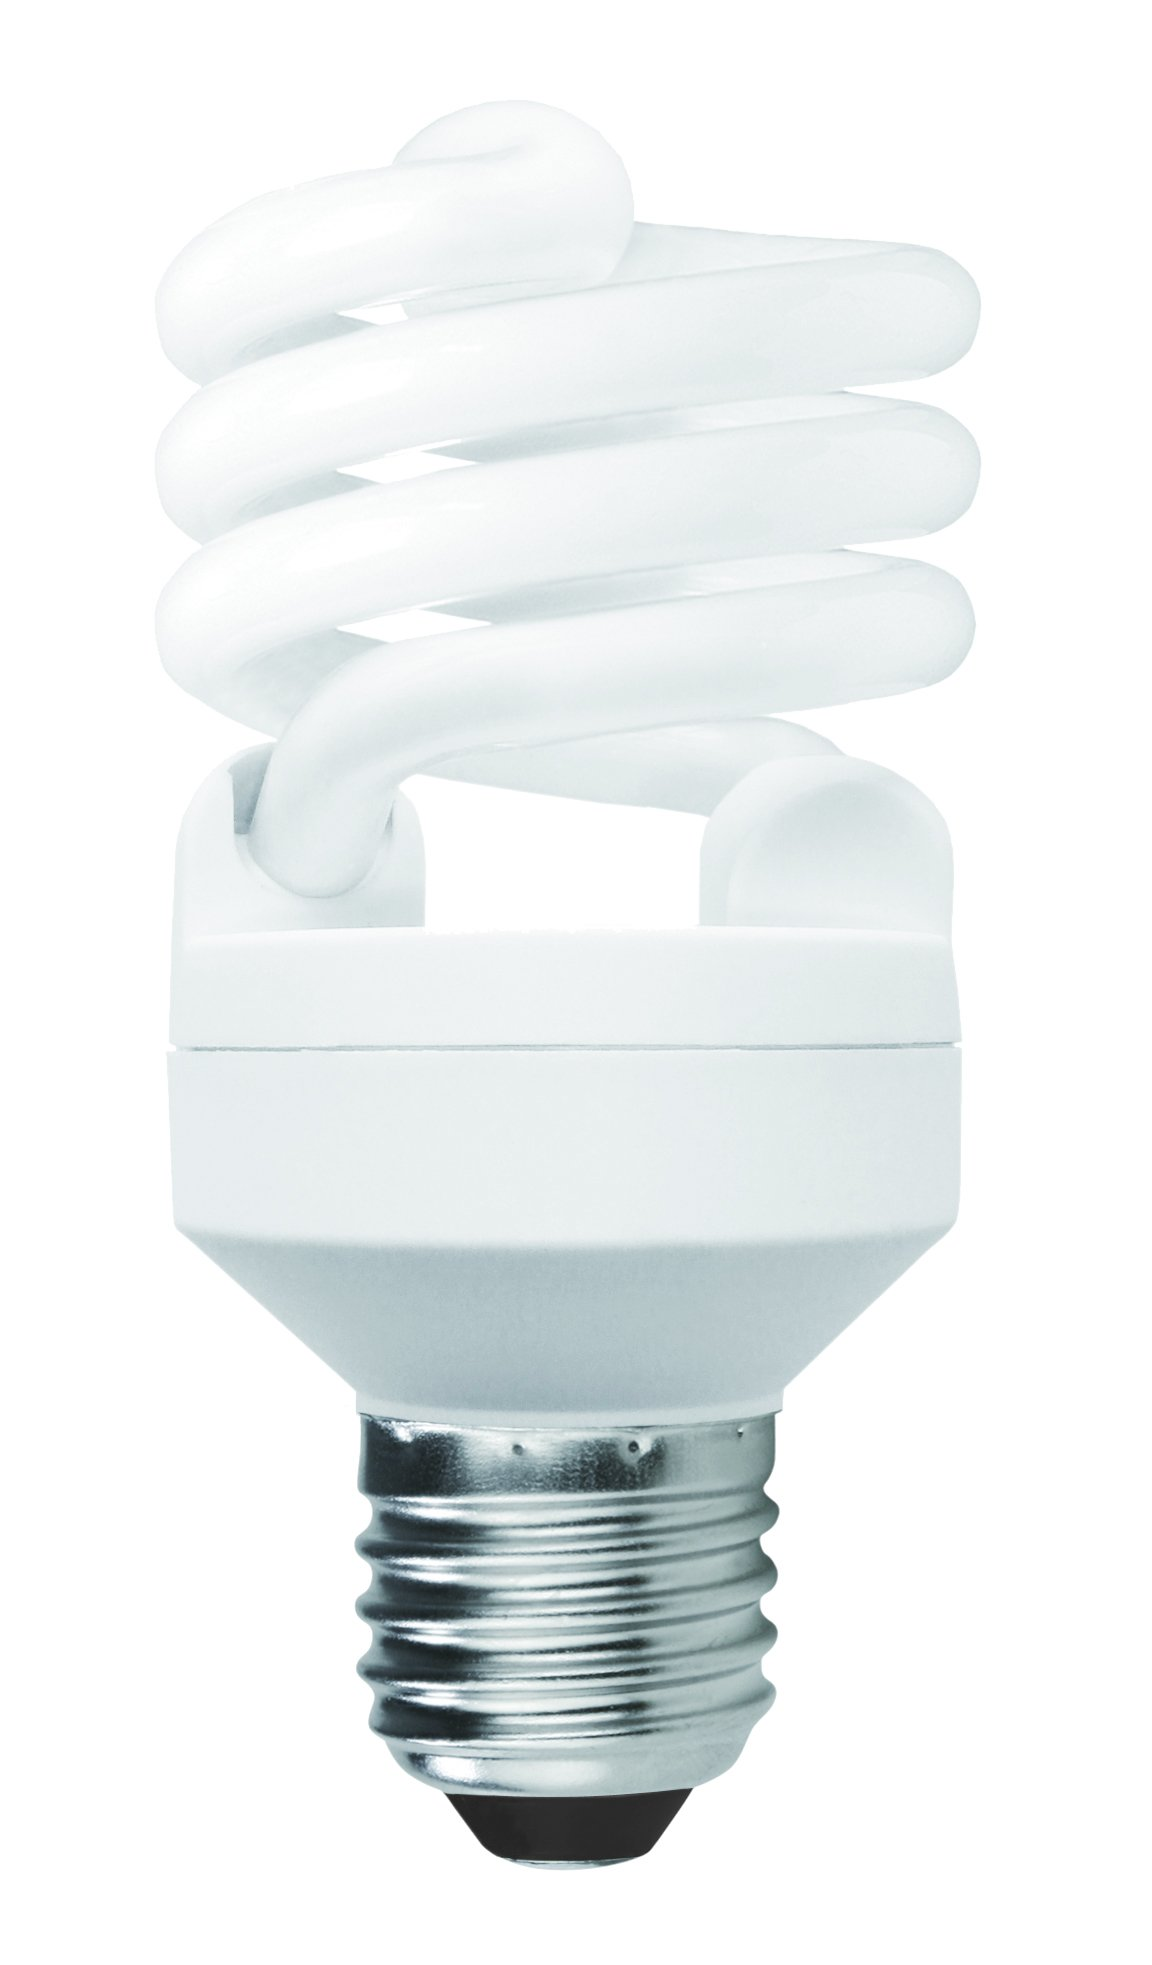 Luxrite LR20193 (48-Pack) 20-Watt CFL T2 Mini Spiral Light Bulb, Equivalent To 75W Incandescent, Daylight 6500K, 1300 Lumens, E26 Standard Base